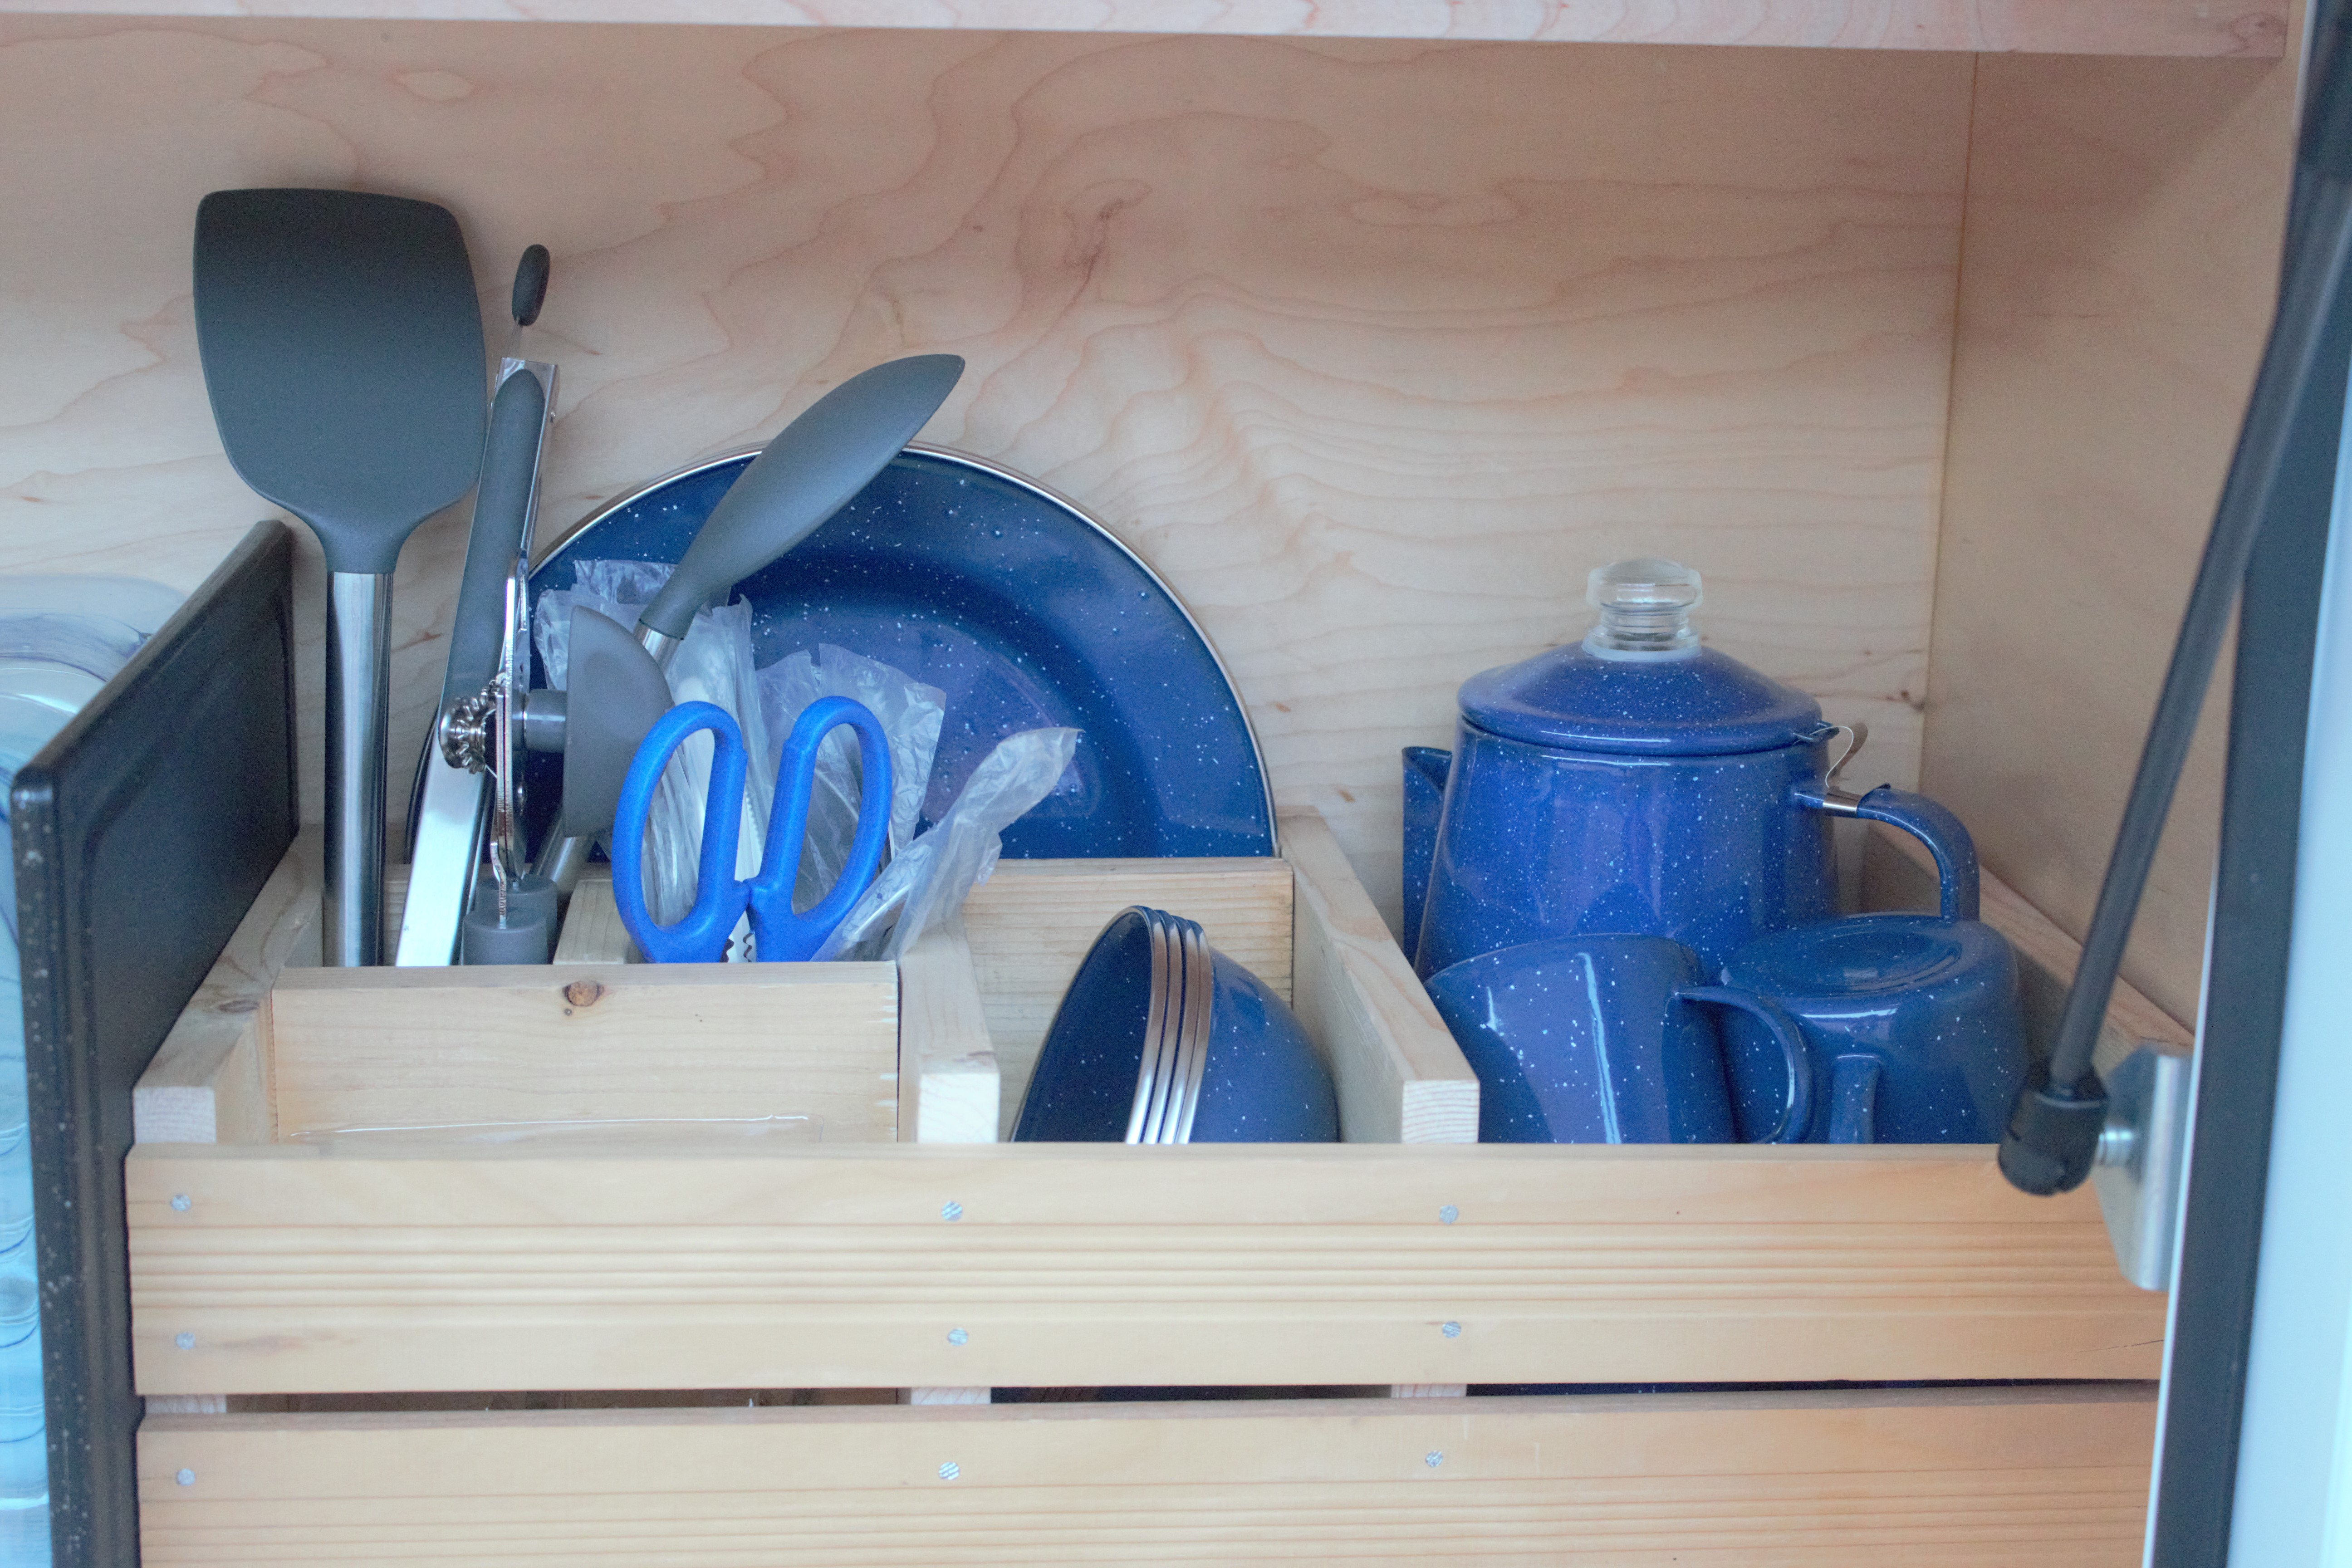 Plates, Flatwares, Coffee urn and cups, Cooking utensils